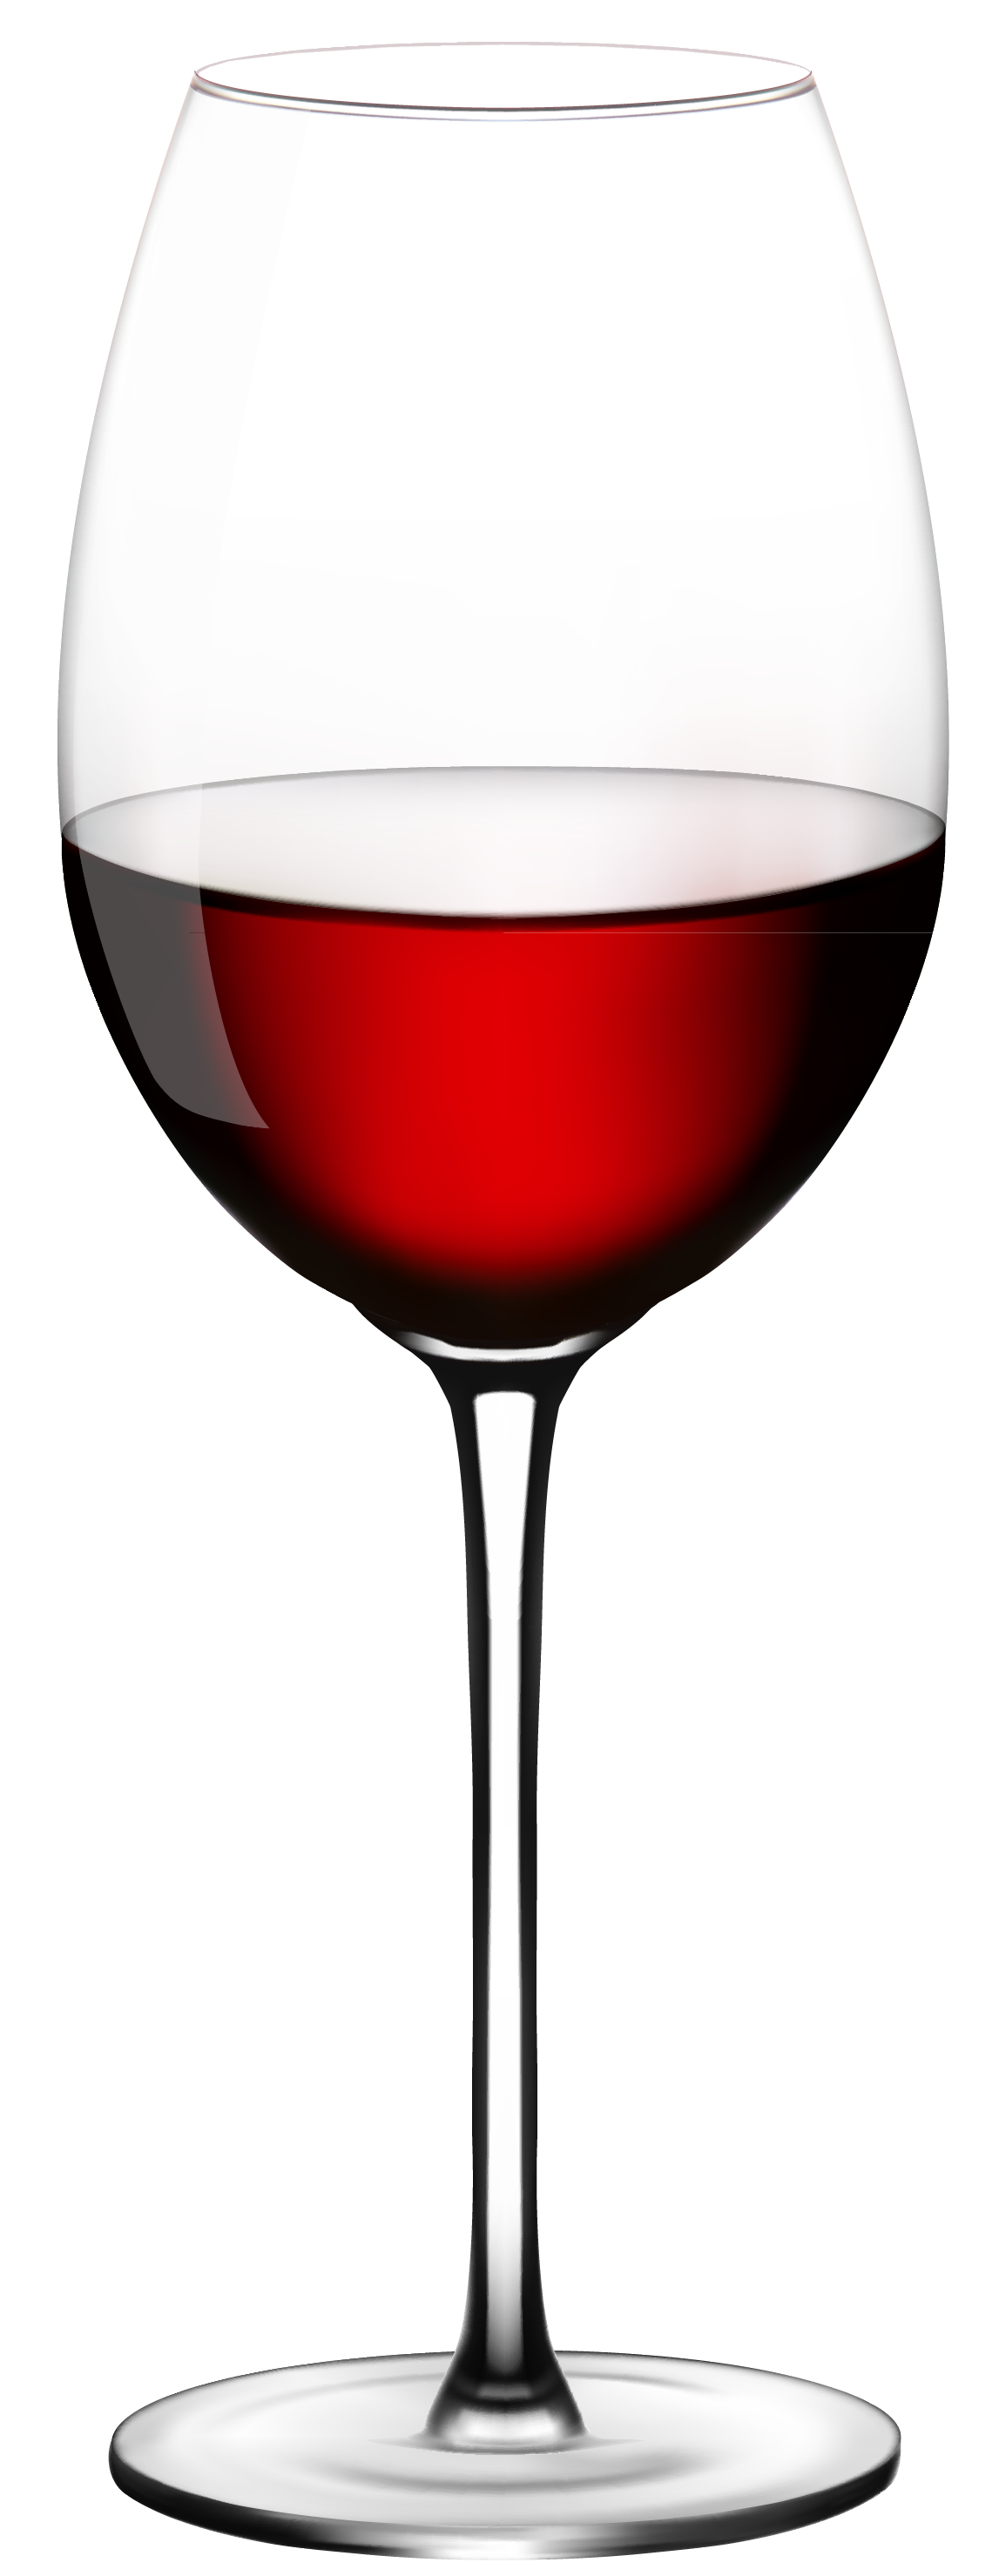 Wine Glass Png Vector Clipart Gallery Yopriceville High Quality Images And Transparent Png Free Clipart Wine Glass Wine Clip Art